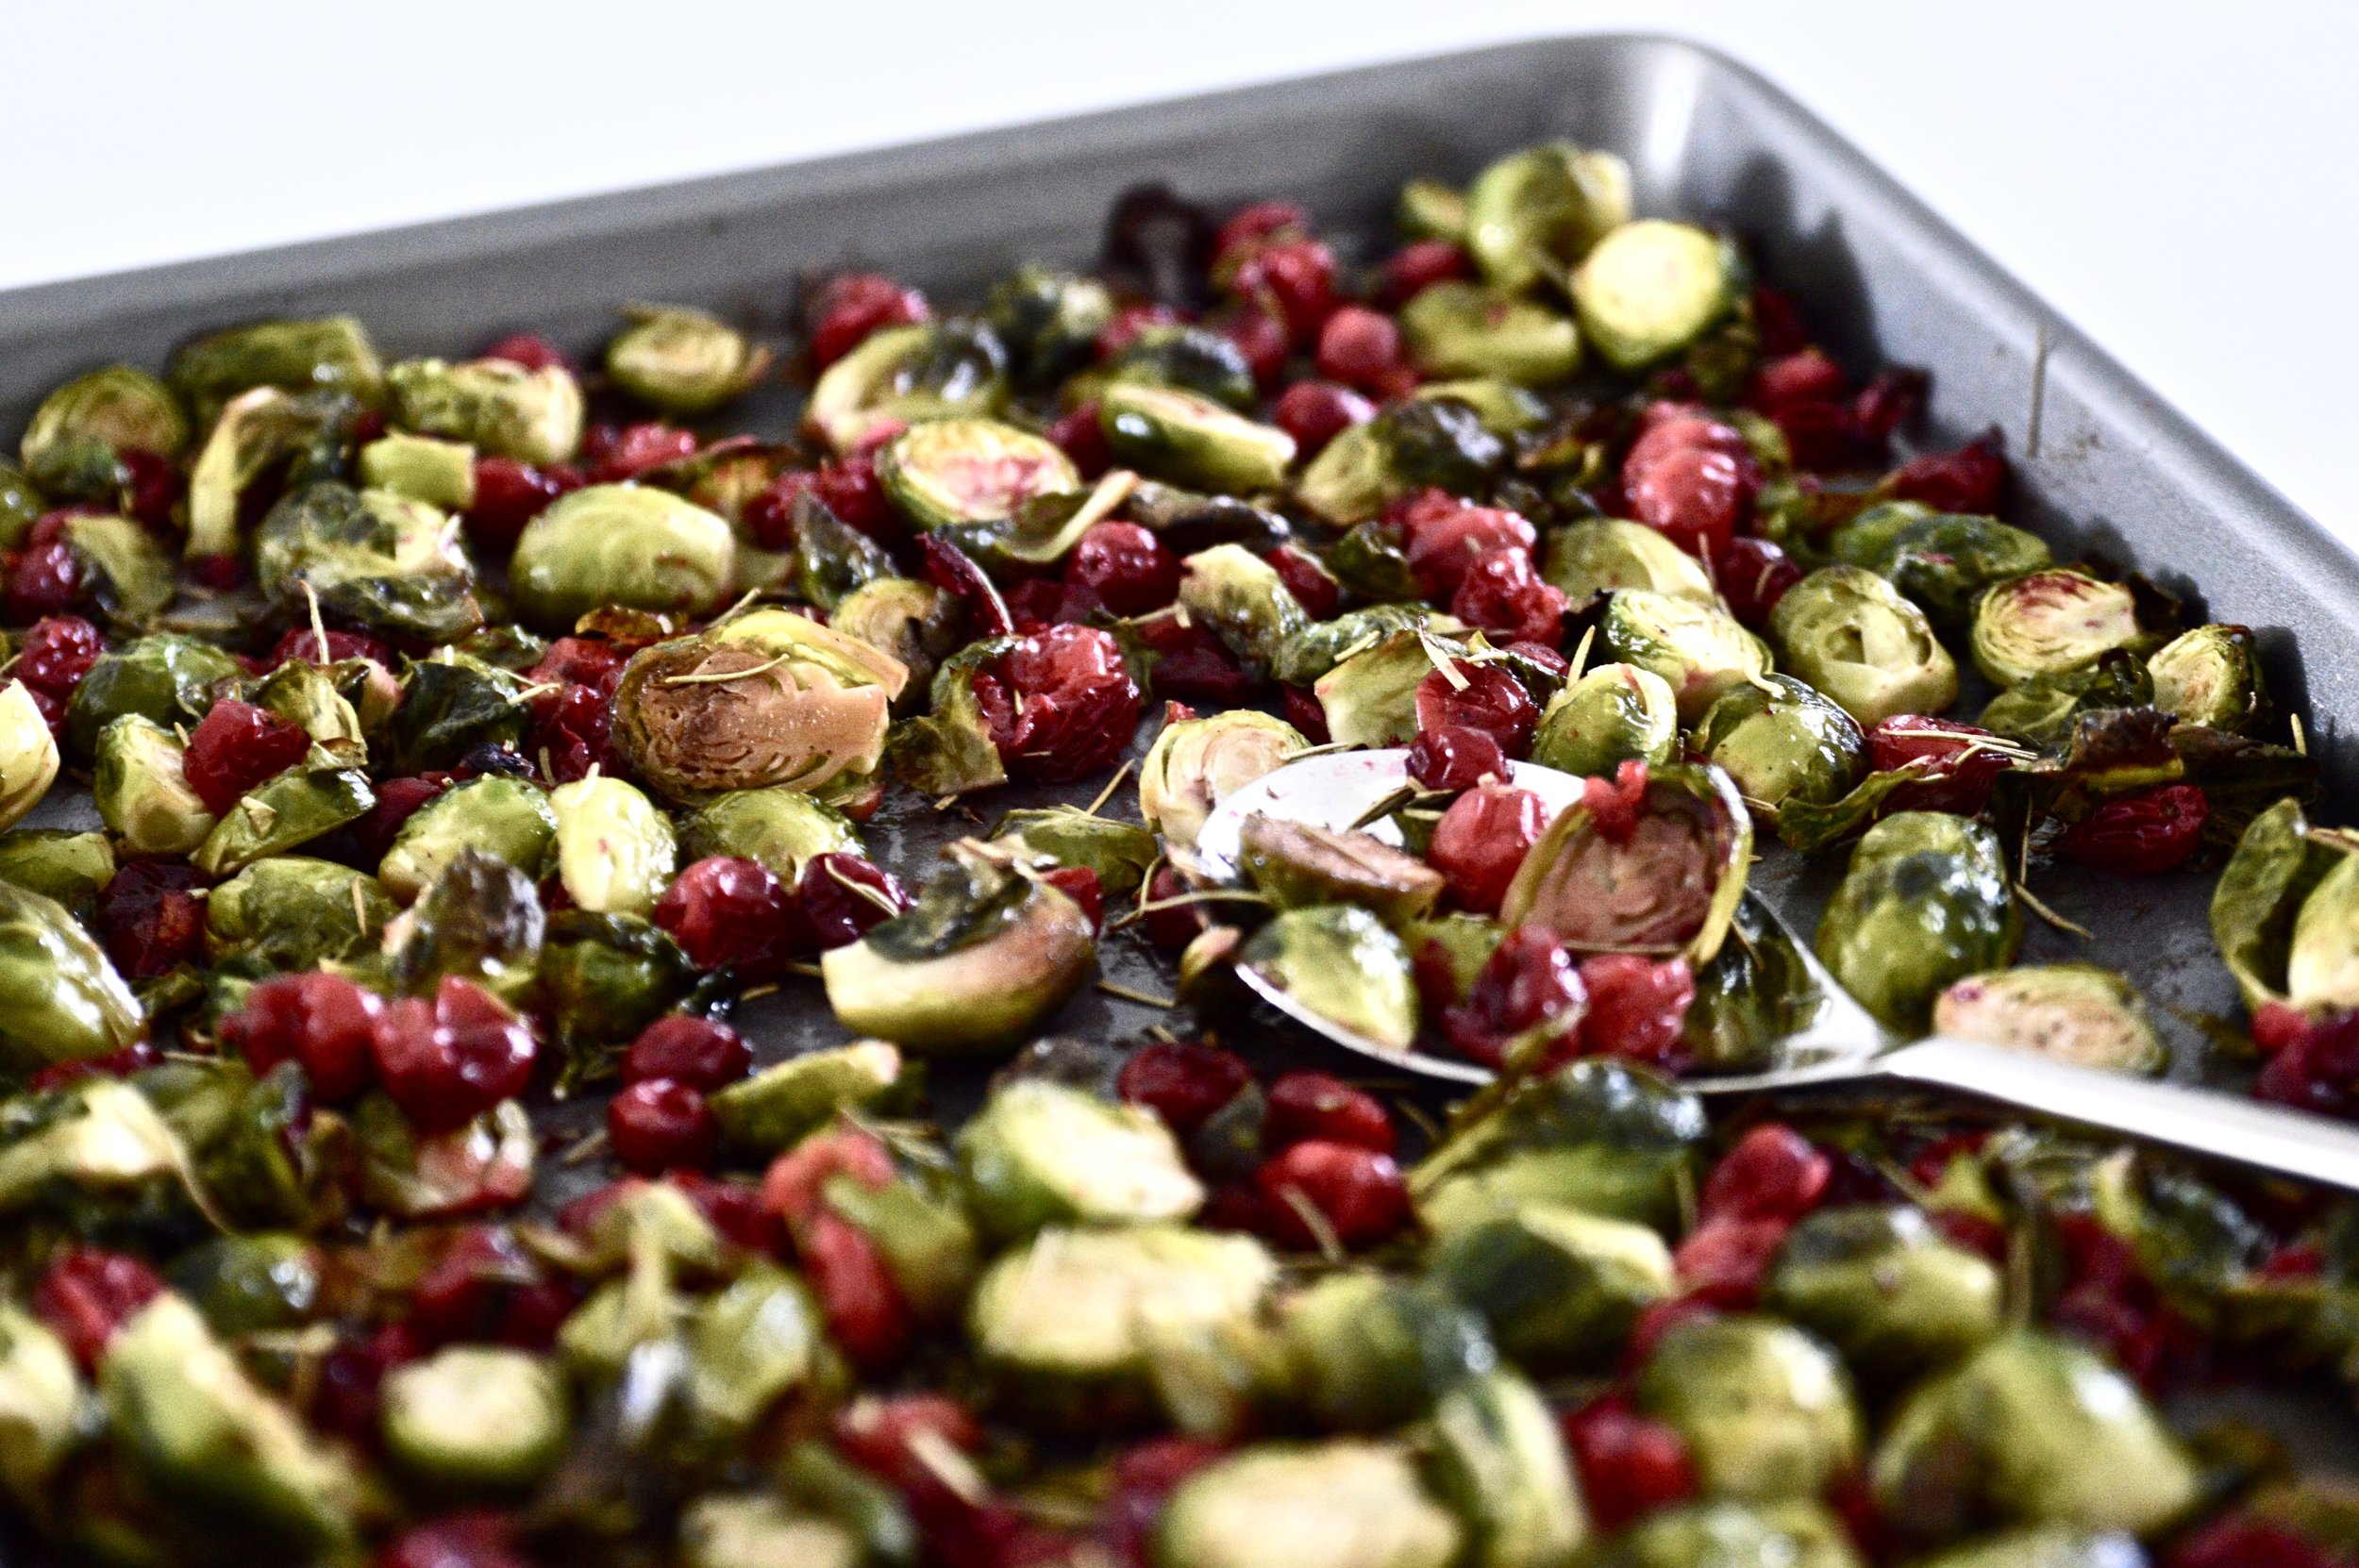 Do you love Brussels sprouts? I hope so! These Maple Cranberry Brussels Sprouts are a sweet yet tangy twist on a classic vegetable recipe. This Maple Cranberry Brussels Sprouts recipe makes the perfect addition to your holiday menu and is a dish that your guests are going to love. What's even better is that this Maple Cranberry Brussels Sprouts recipe is paleo, vegan and AIP friendly! #paleo #vegan #AIP